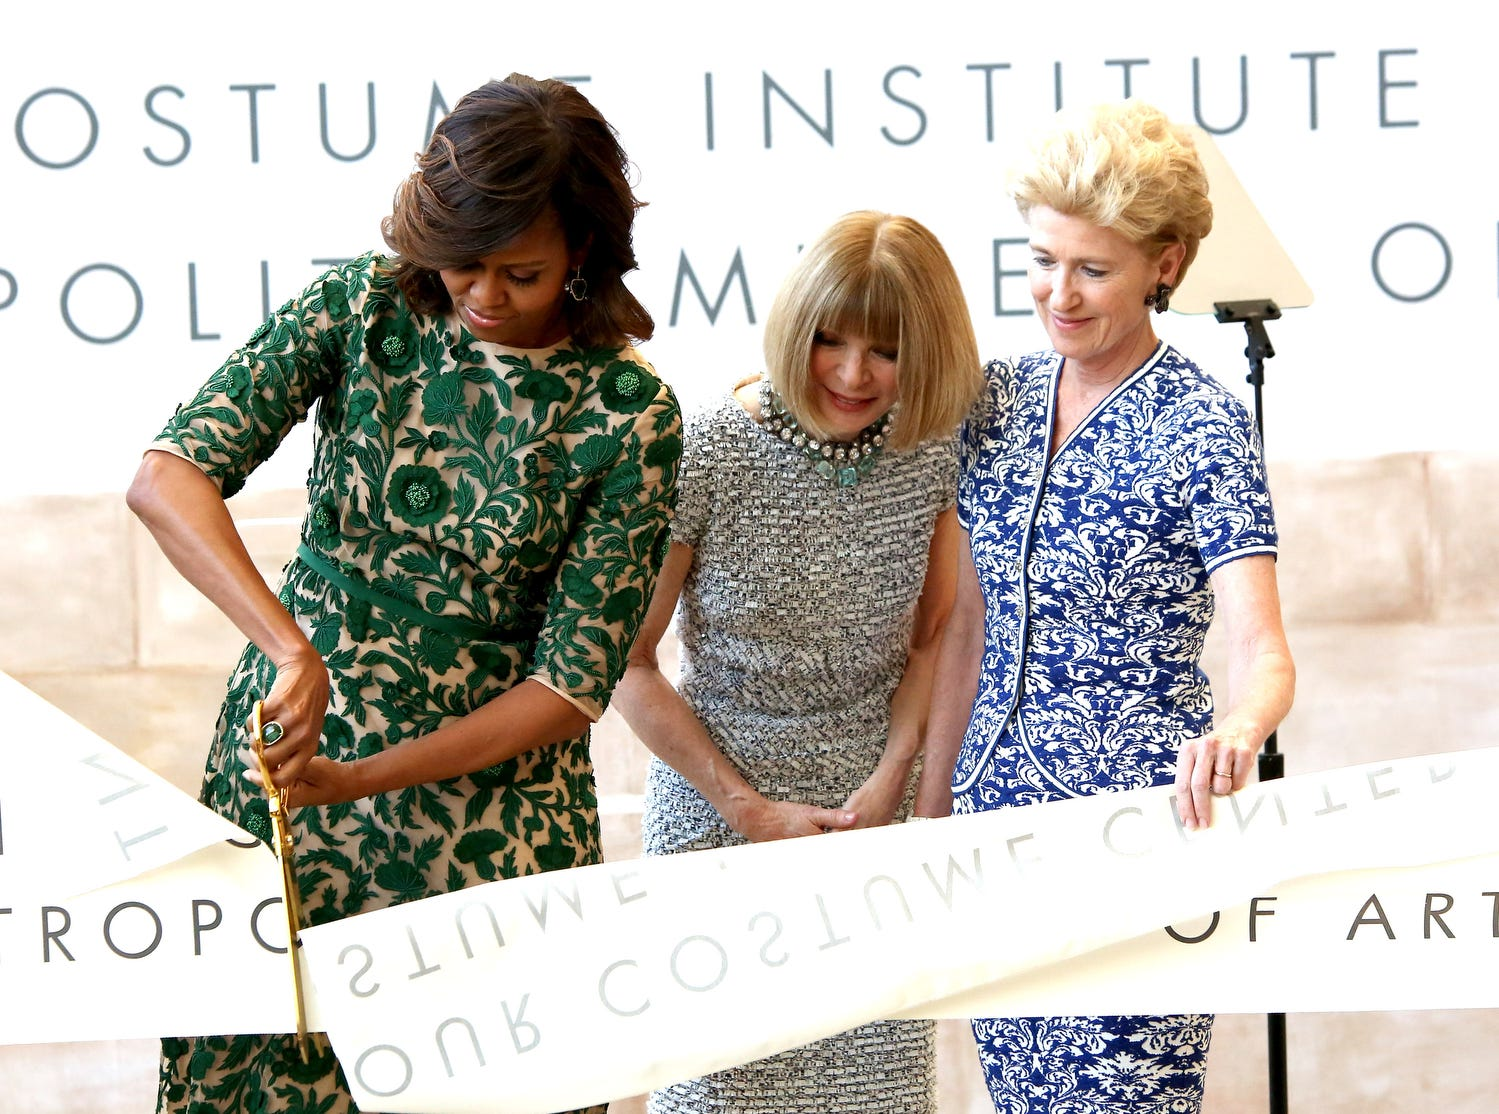 NEW YORK, NY - MAY 05:  (L-R) First Lady of the United States Michelle Obama, Vogue Editor in Chief Anna Wintour and Metropolitan Museum of Art President Emily K. Rafferty attend the Anna Wintour Costume Center Grand Opening at the Metropolitan Museum of Art on May 5, 2014 in New York City.  (Photo by Paul Zimmerman/WireImage) ORG XMIT: 487575389 ORIG FILE ID: 488285747